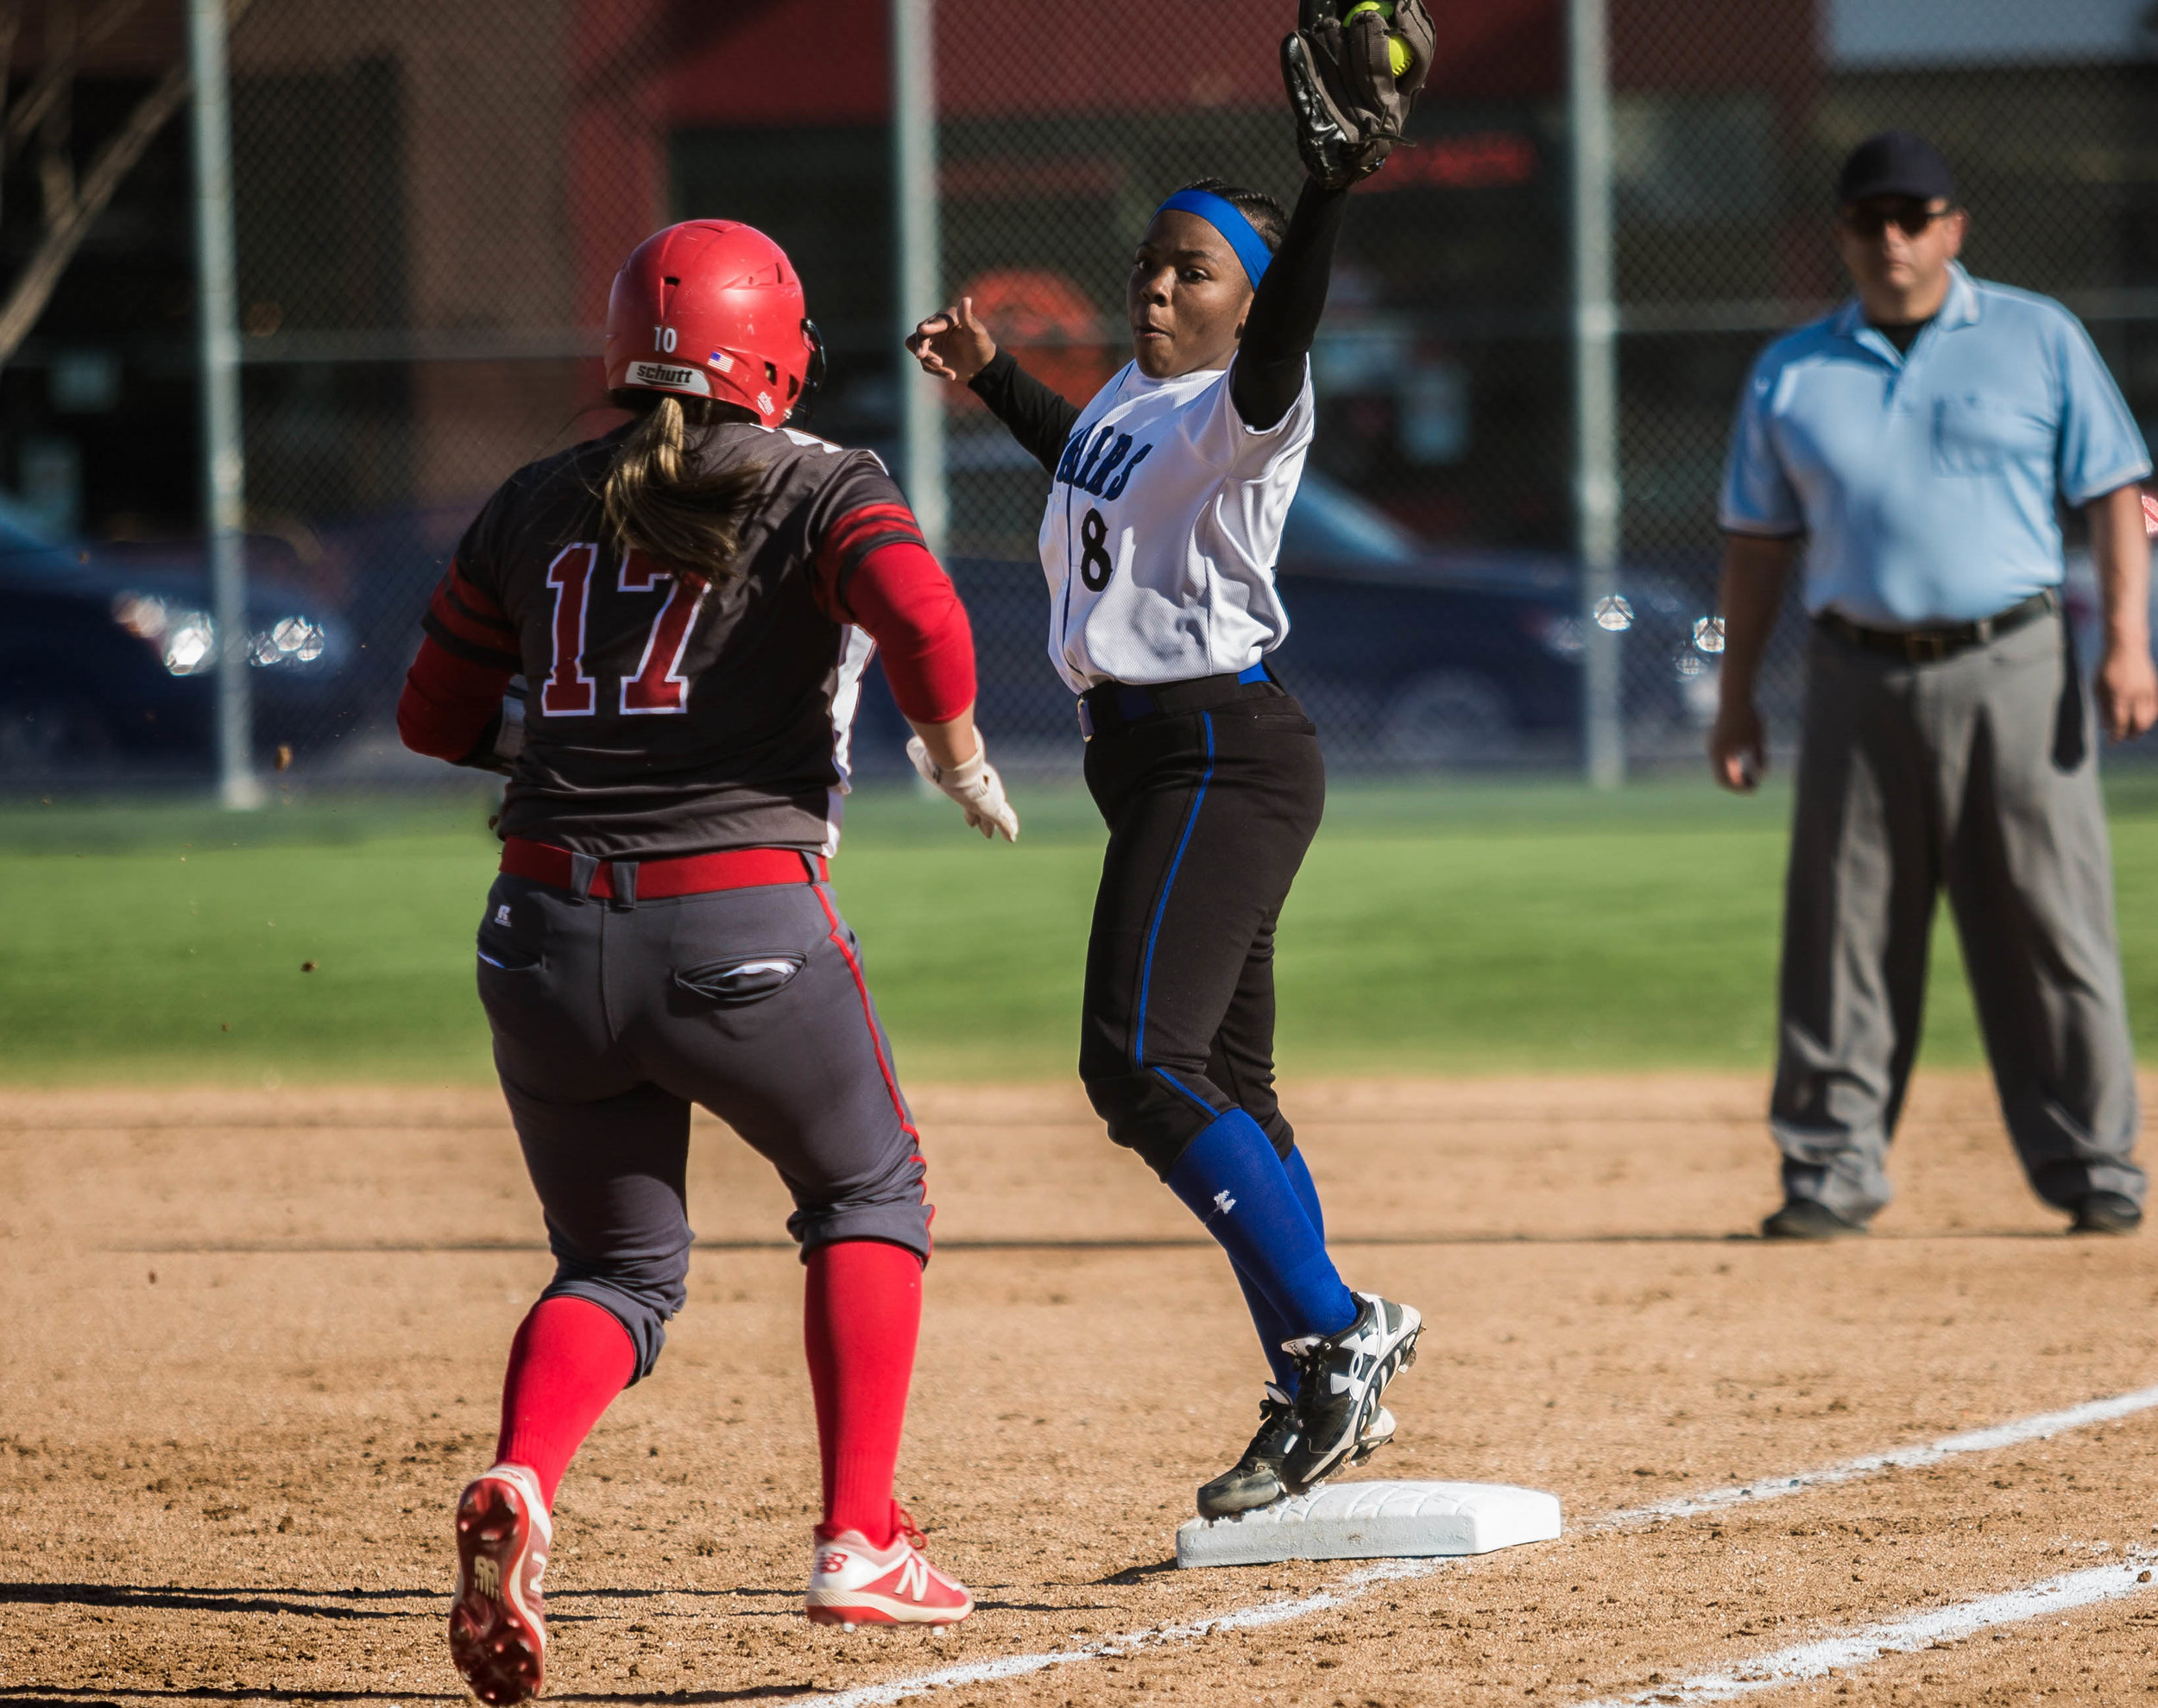 Santa Monica College Corsair freshman first base player Kahlaysia Miller #8 (right, white) successfully catches the ball thrown across the infield and tags out Bakersfield College Renegade batter Alexis Solis #17 during the bottom of the 5th inning at the Santa Monica College Corsair Field in Santa Monica California, on Tuesday, March 6, 2018. The Corsairs would go on to lose the game to Bakersfield College 0 – 9, making their tally for the season 6 wins and 11 losses. (Corsair Photo: Matthew Martin)